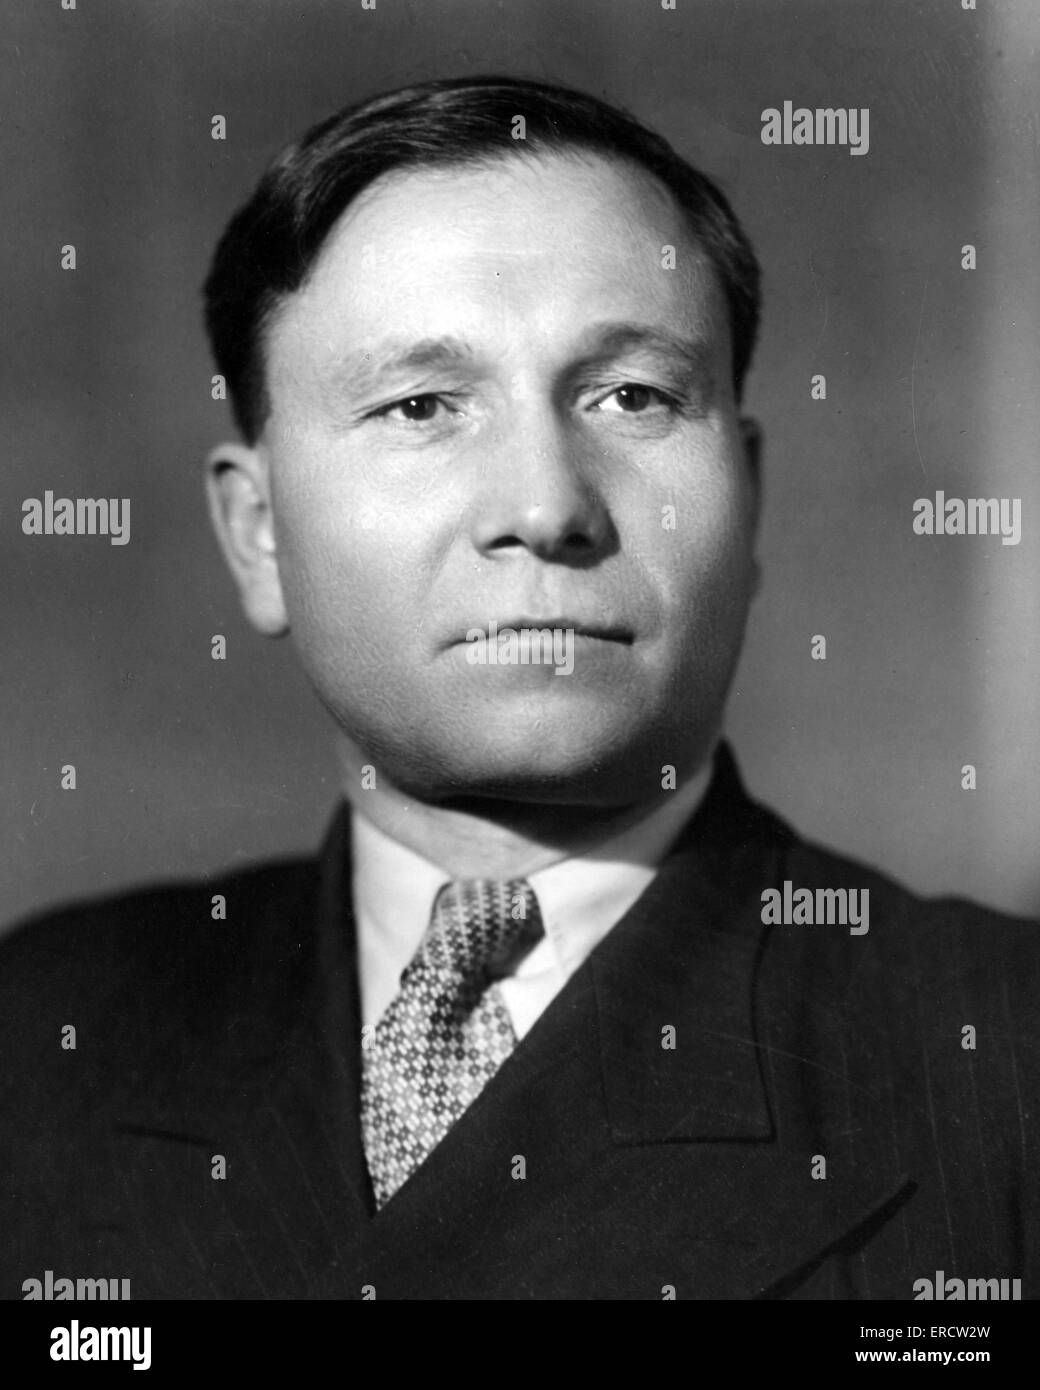 Alexander Shcherbakov, Soviet state and party leader: biography, family 26